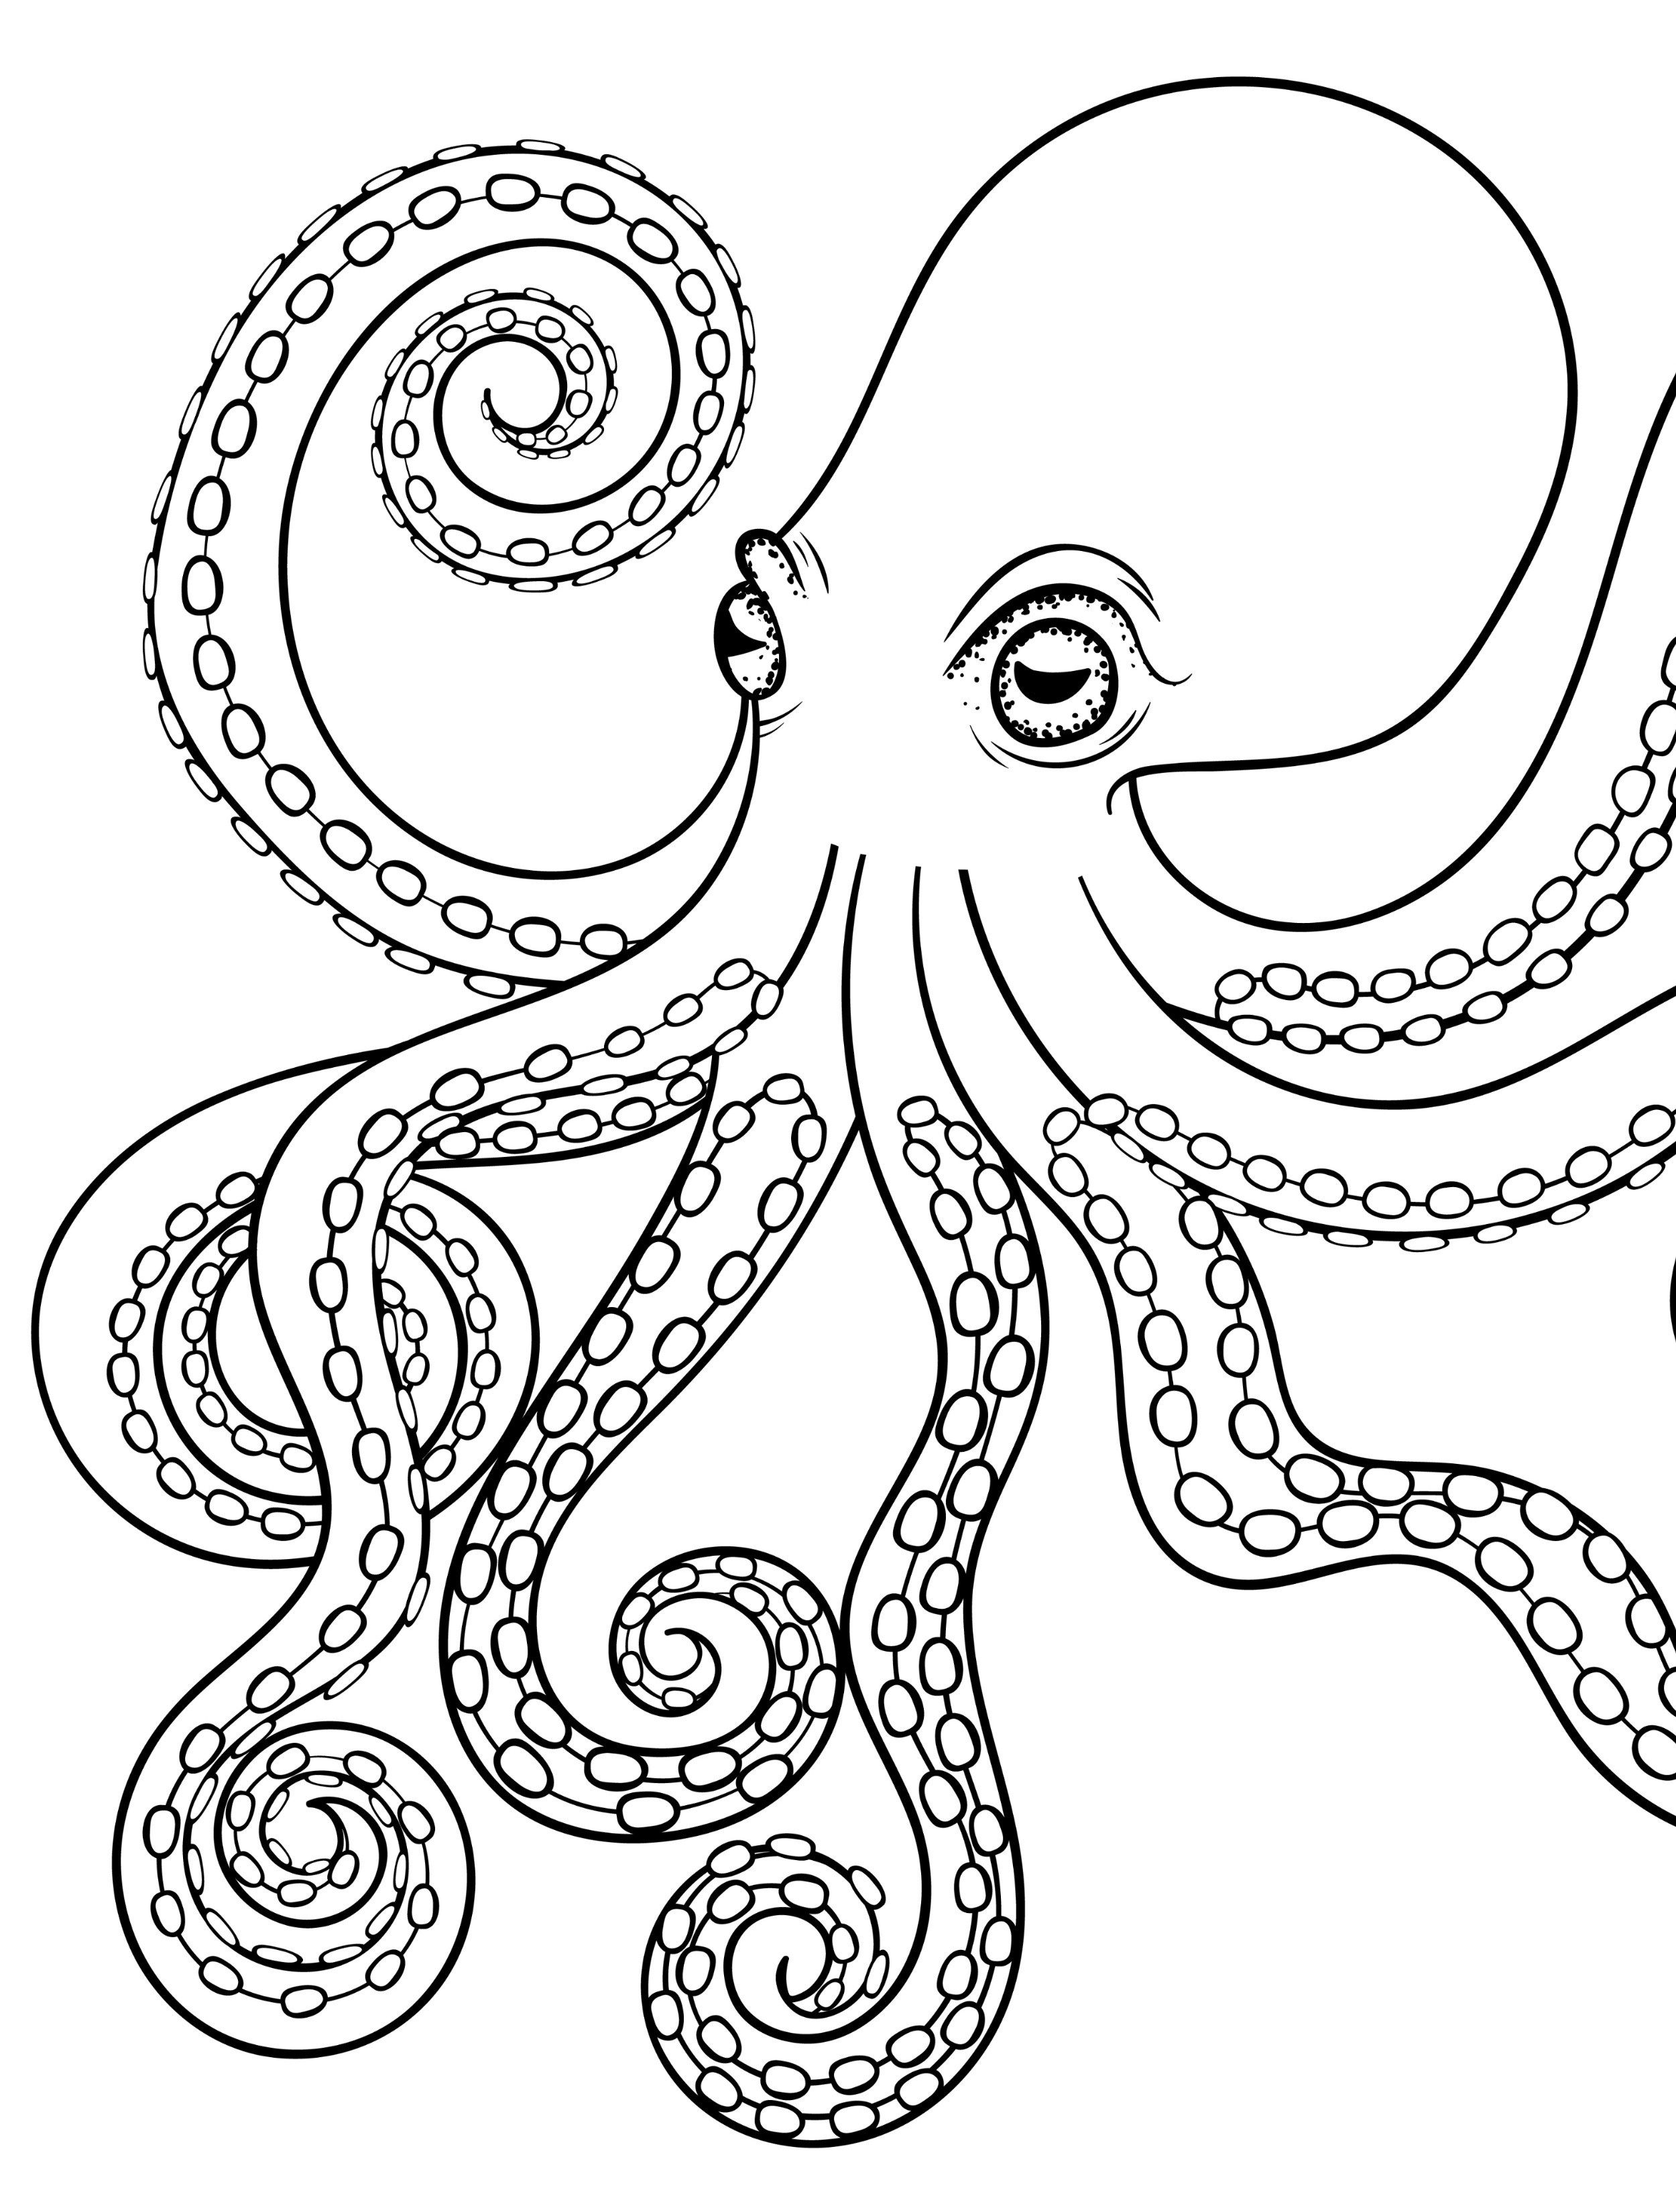 octopus adult coloring page for adults | Sea/Ocean | Pinterest | Dibujo